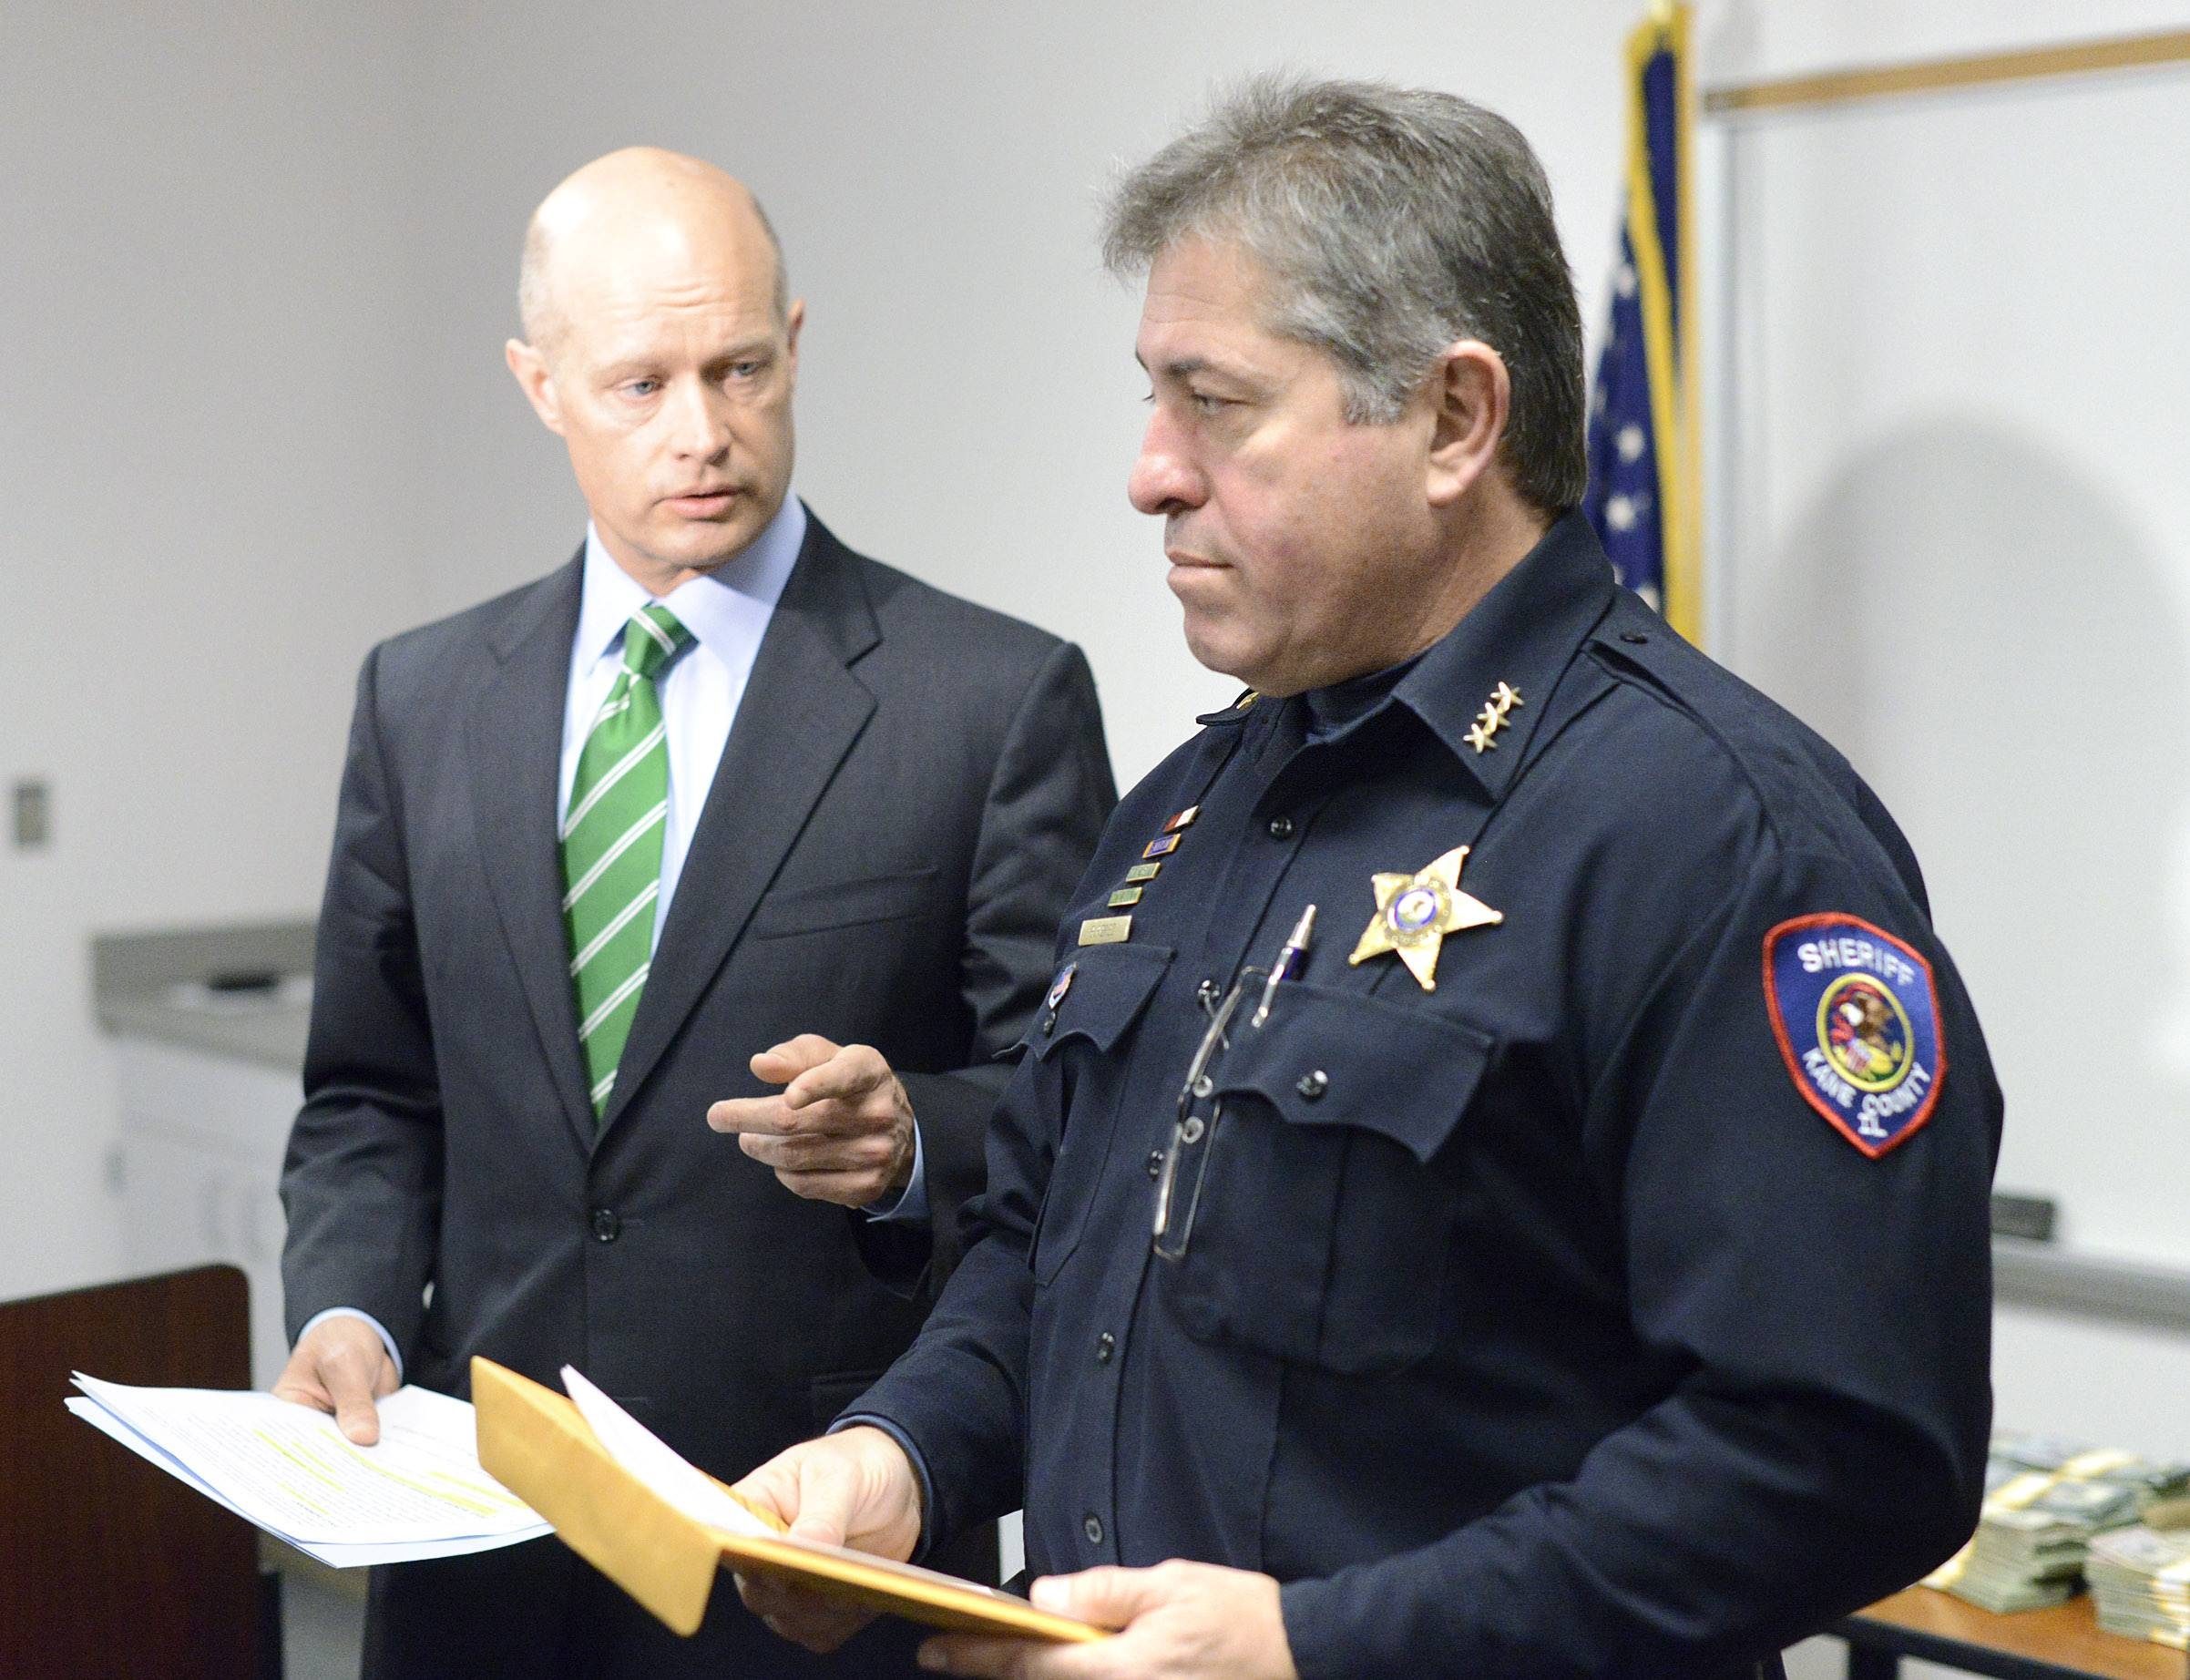 Kane County State's Attorney Joe McMahon, left, and Kane County Sheriff Pat Perez announced the seizure of 17 kilograms of cocaine with an estimated street value of more than $1.6 million, and $259,569 in cash at a news conference Friday at the sheriff's office in St. Charles.